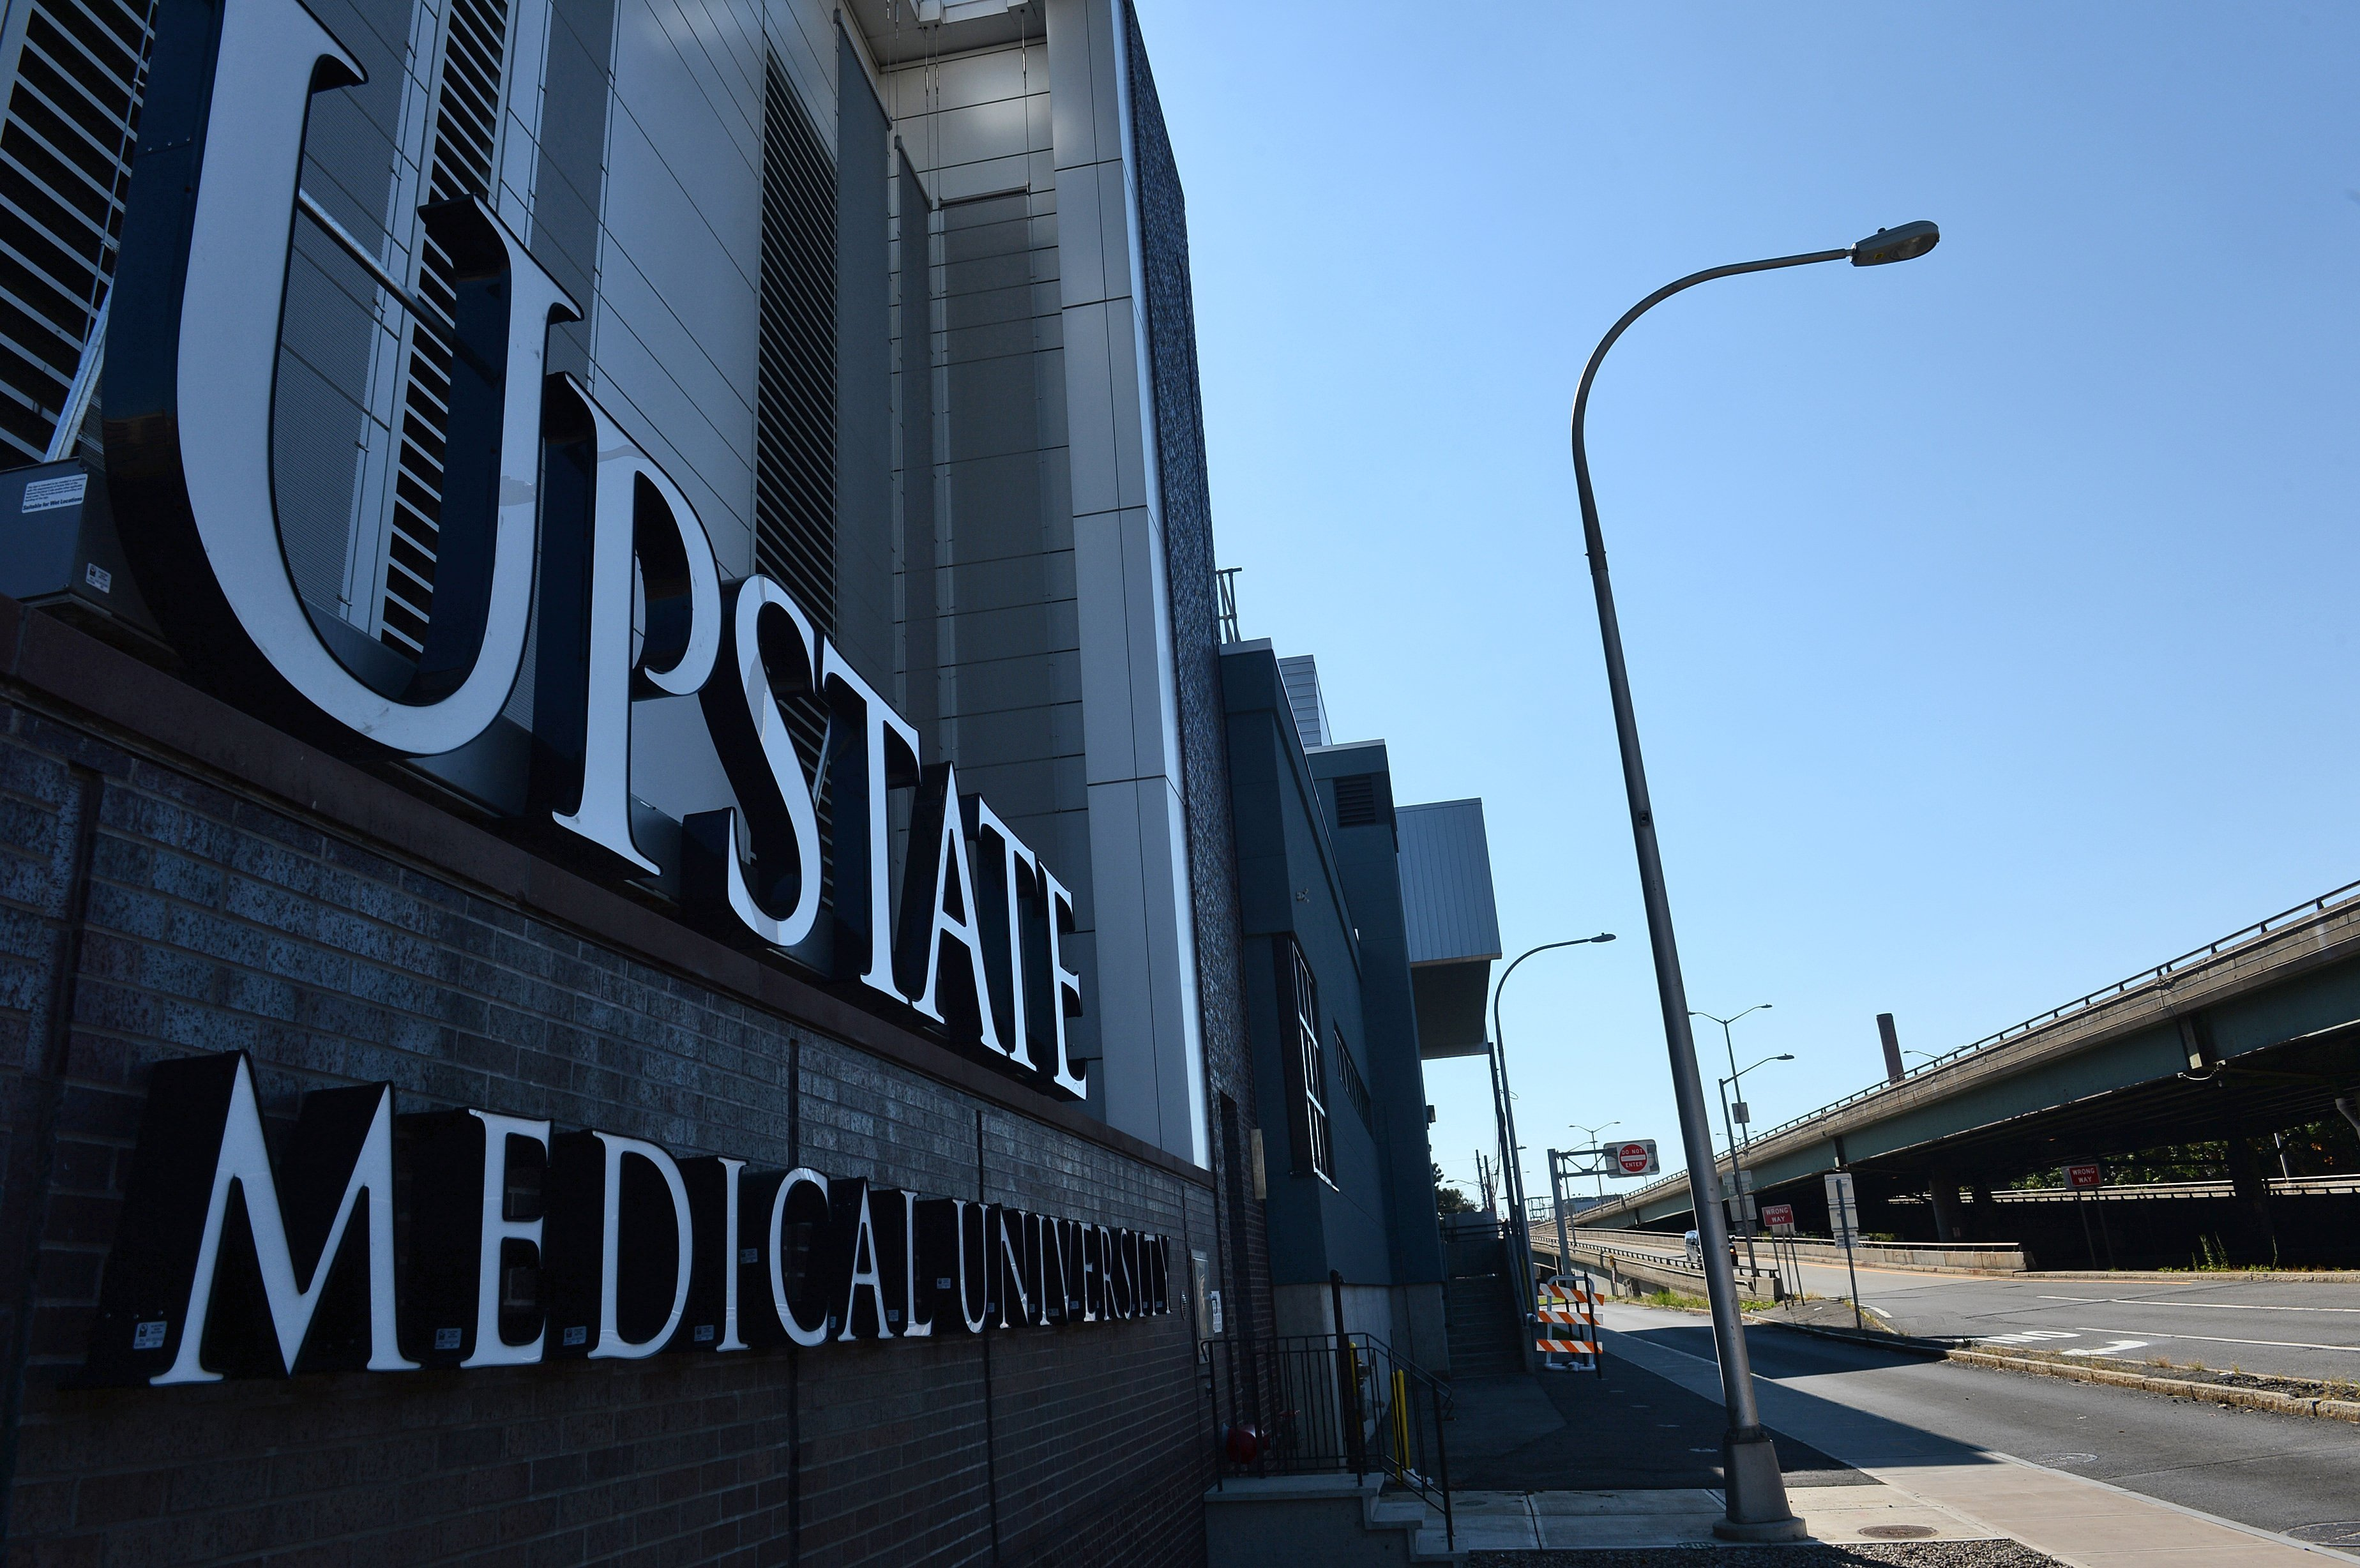 Another sad chapter at Upstate Medical: When will SUNY show leadership? (Editorial)